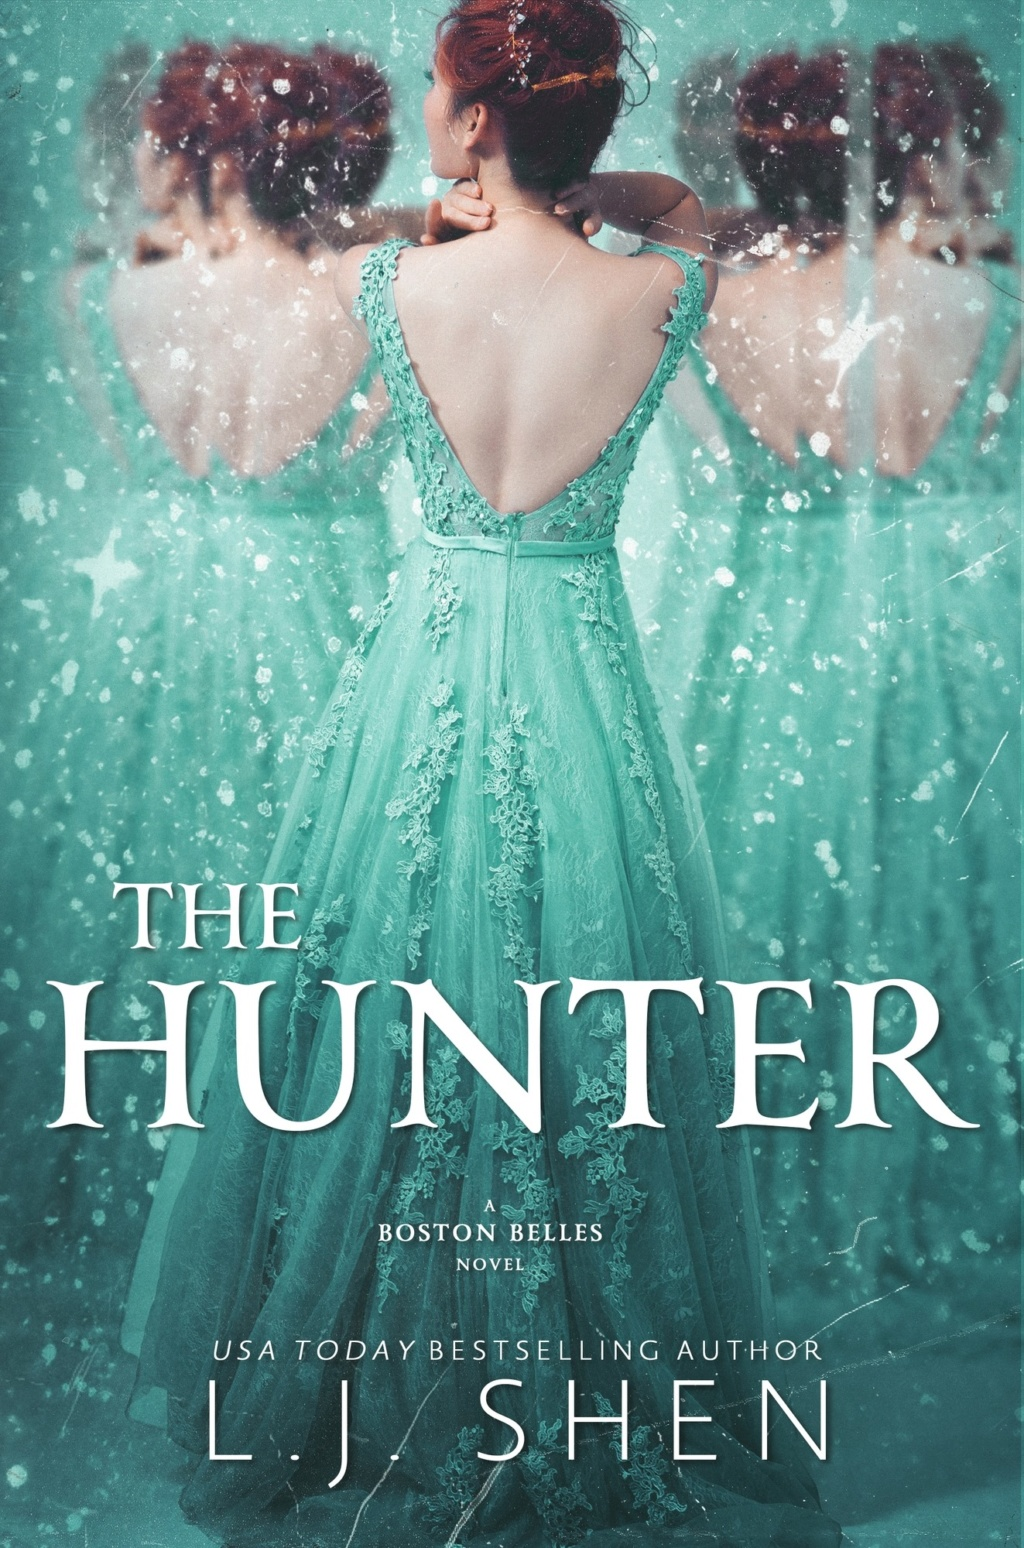 SHEN L J - BOSTON BELLES - TOME 1 : The Hunter 95291610